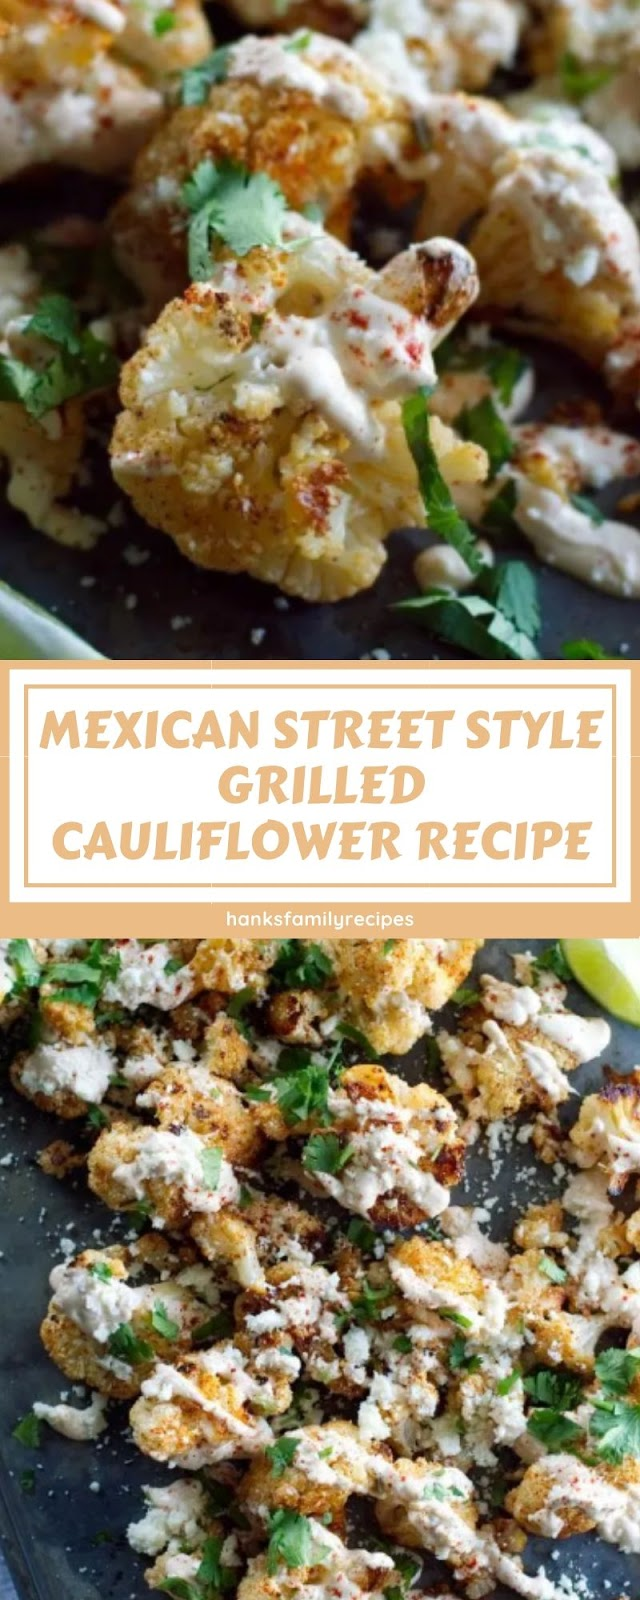 MEXICAN STREET STYLE GRILLED CAULIFLOWER RECIPE